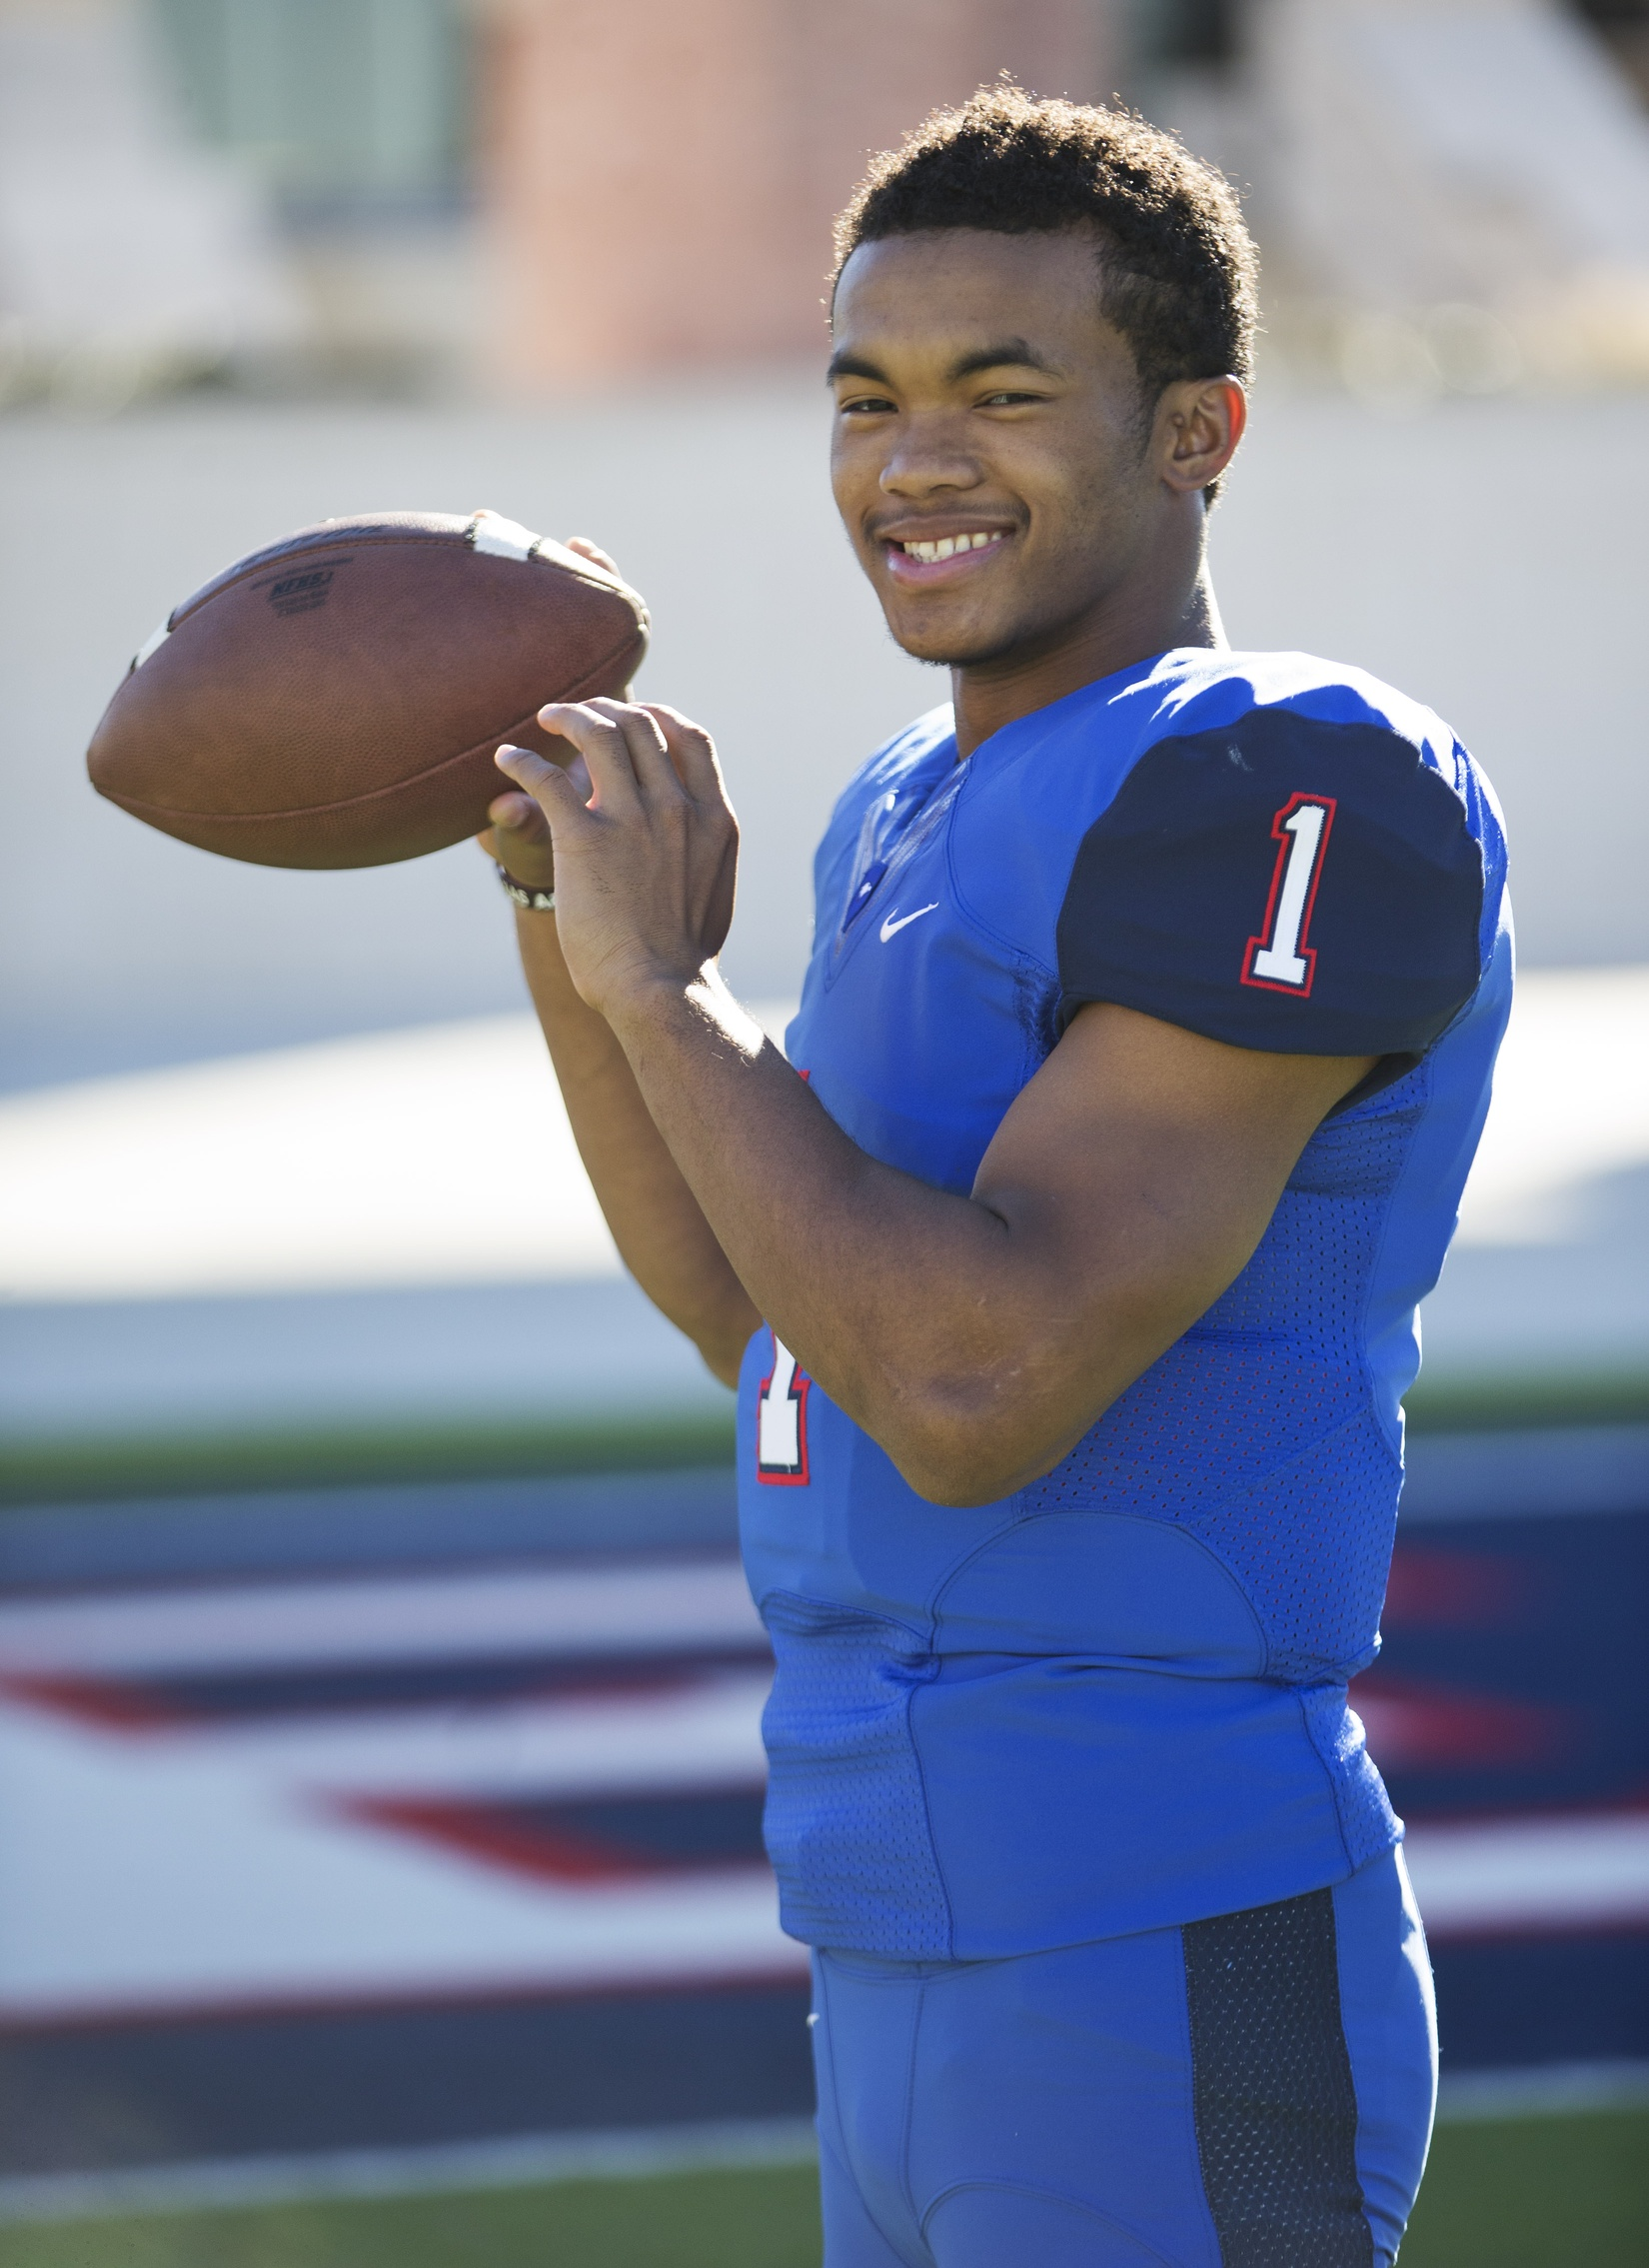 kyler murray - photo #9